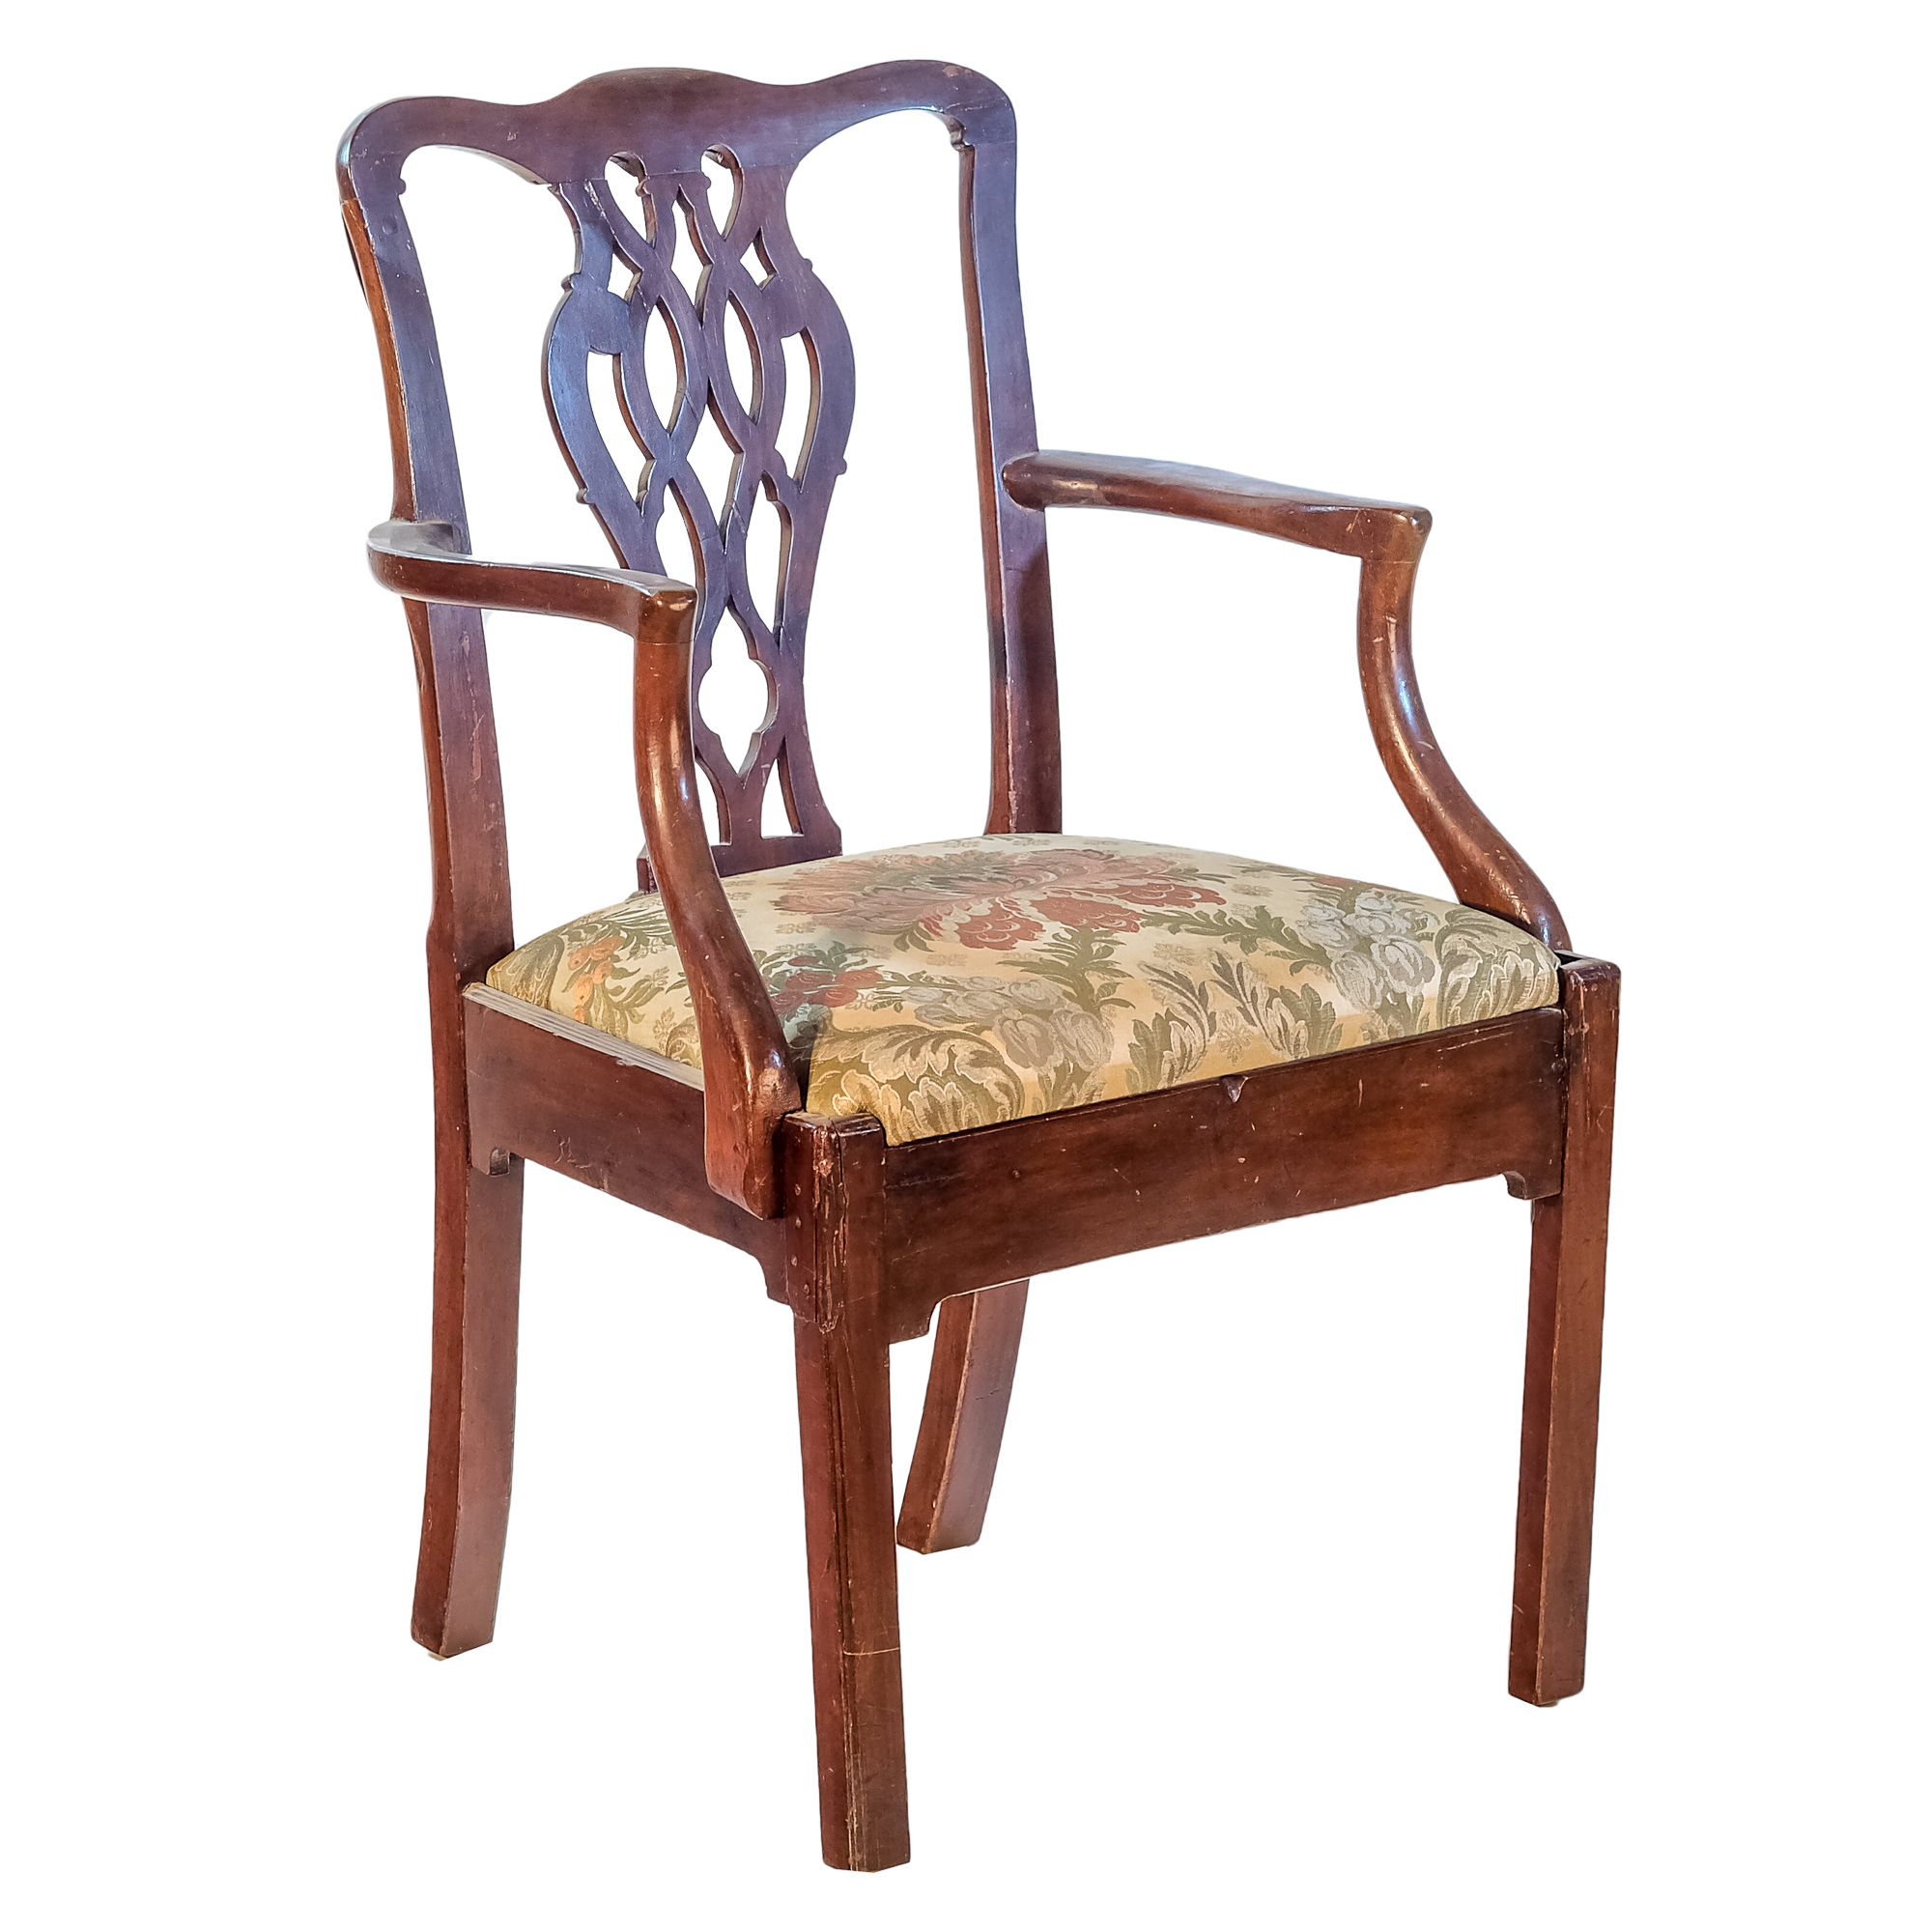 'Chippendale Style Carved Mahogany Elbow Chair 19th Century or Earlier'